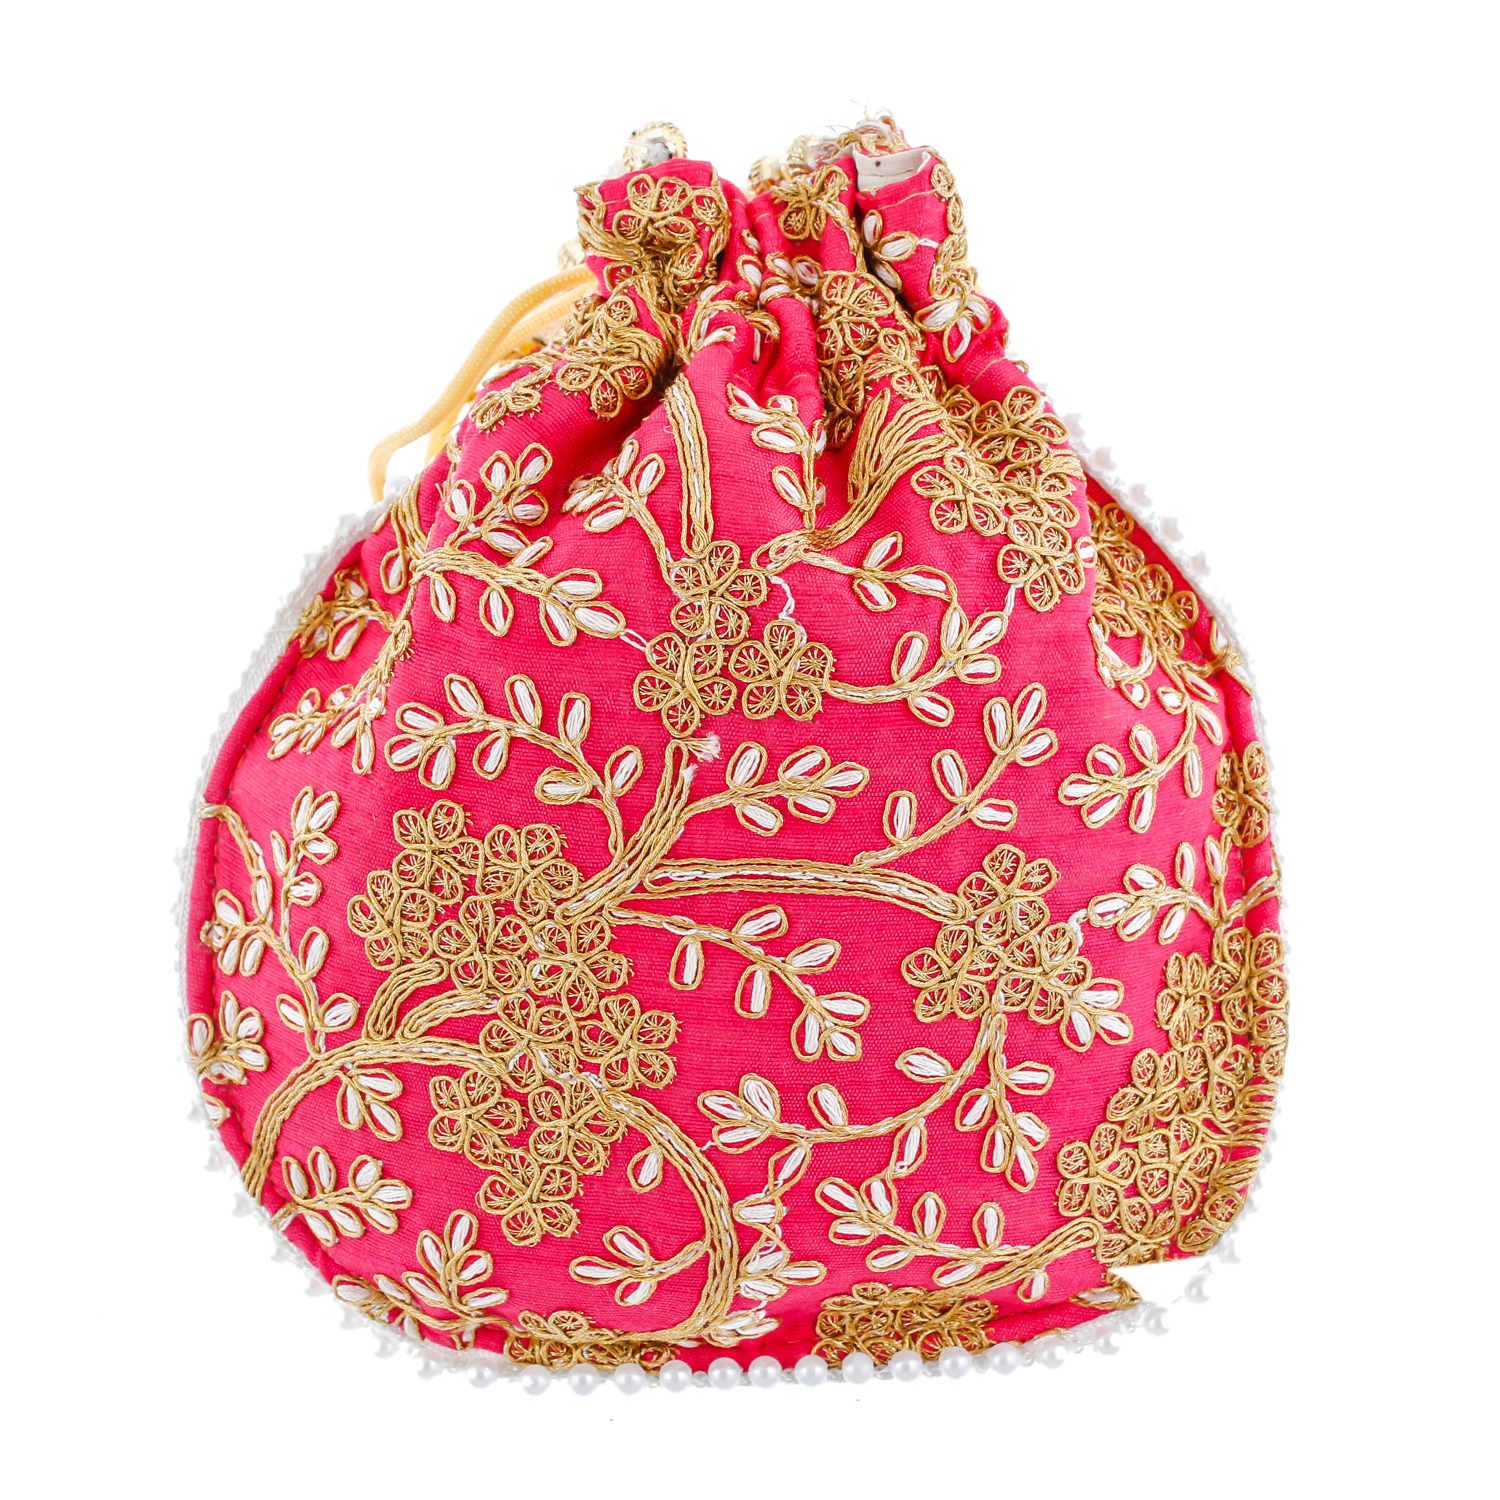 Kuber Industries Ethnic Clutch Silk 2 Pieces Potli Batwa Pouch Bag with Beadwork Gift For Women (Pink) - CTKTC23034